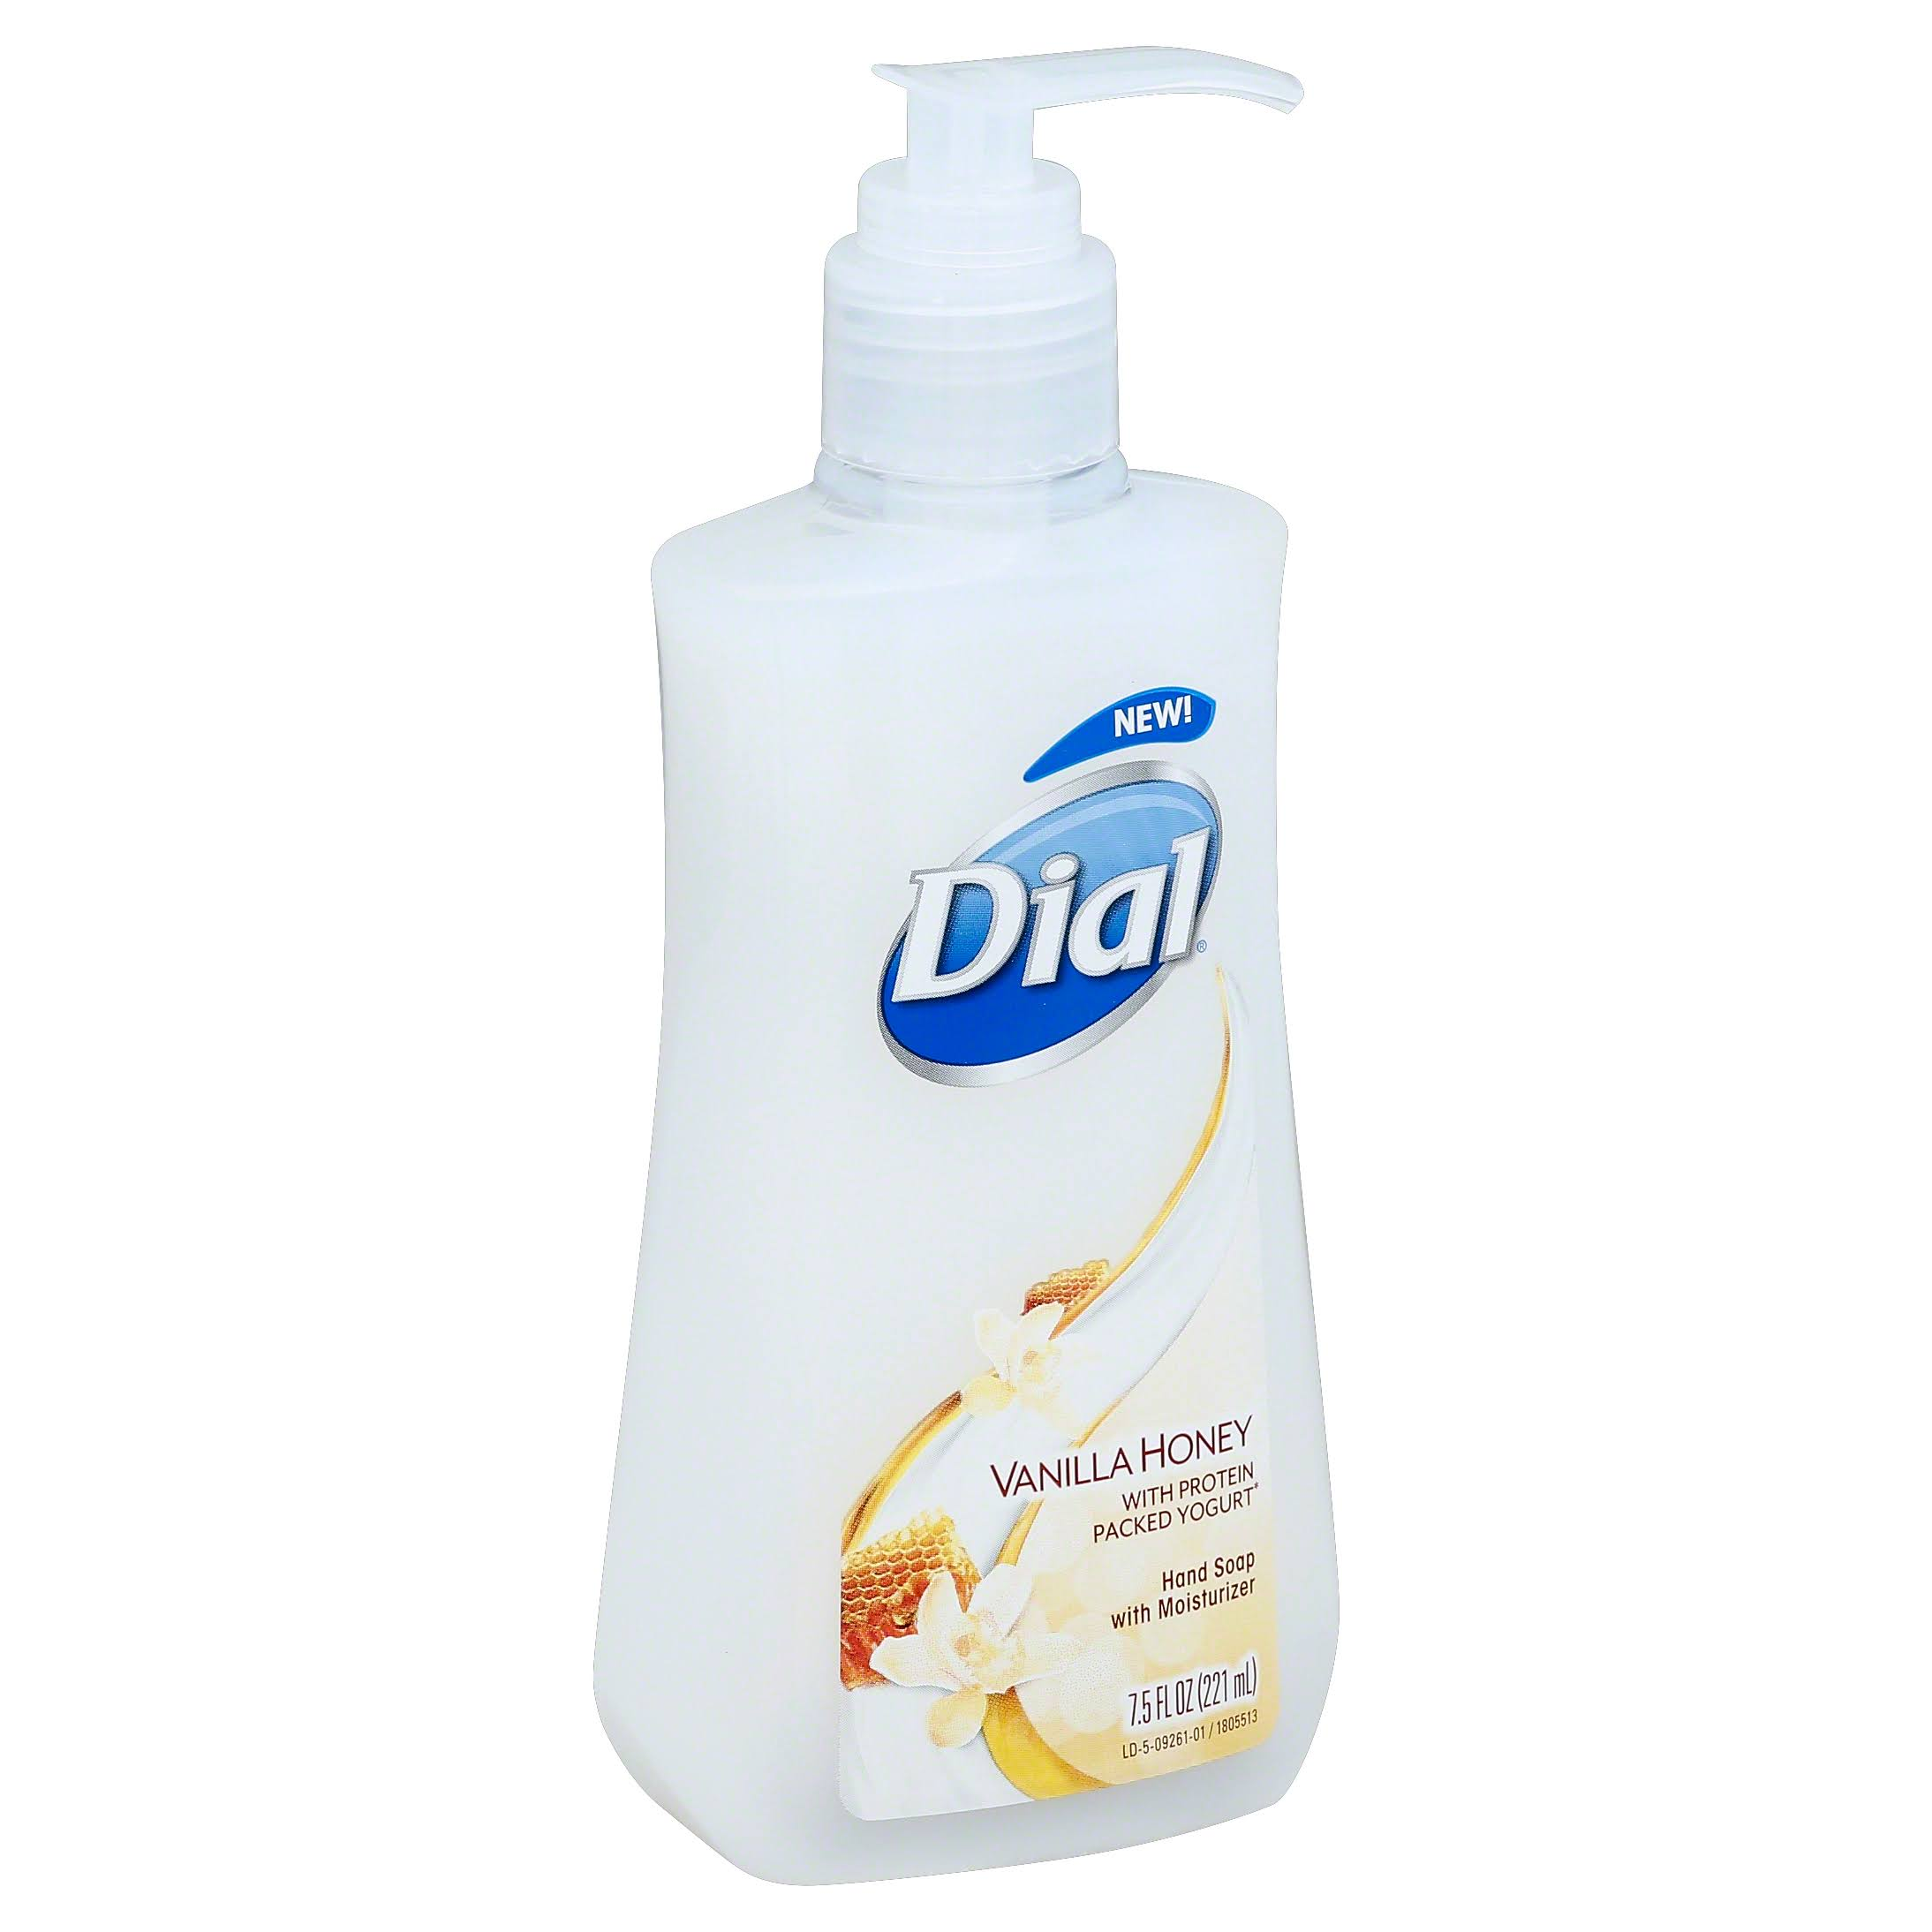 Dial Liquid Hand Soap - Vanilla Honey, 7.5oz